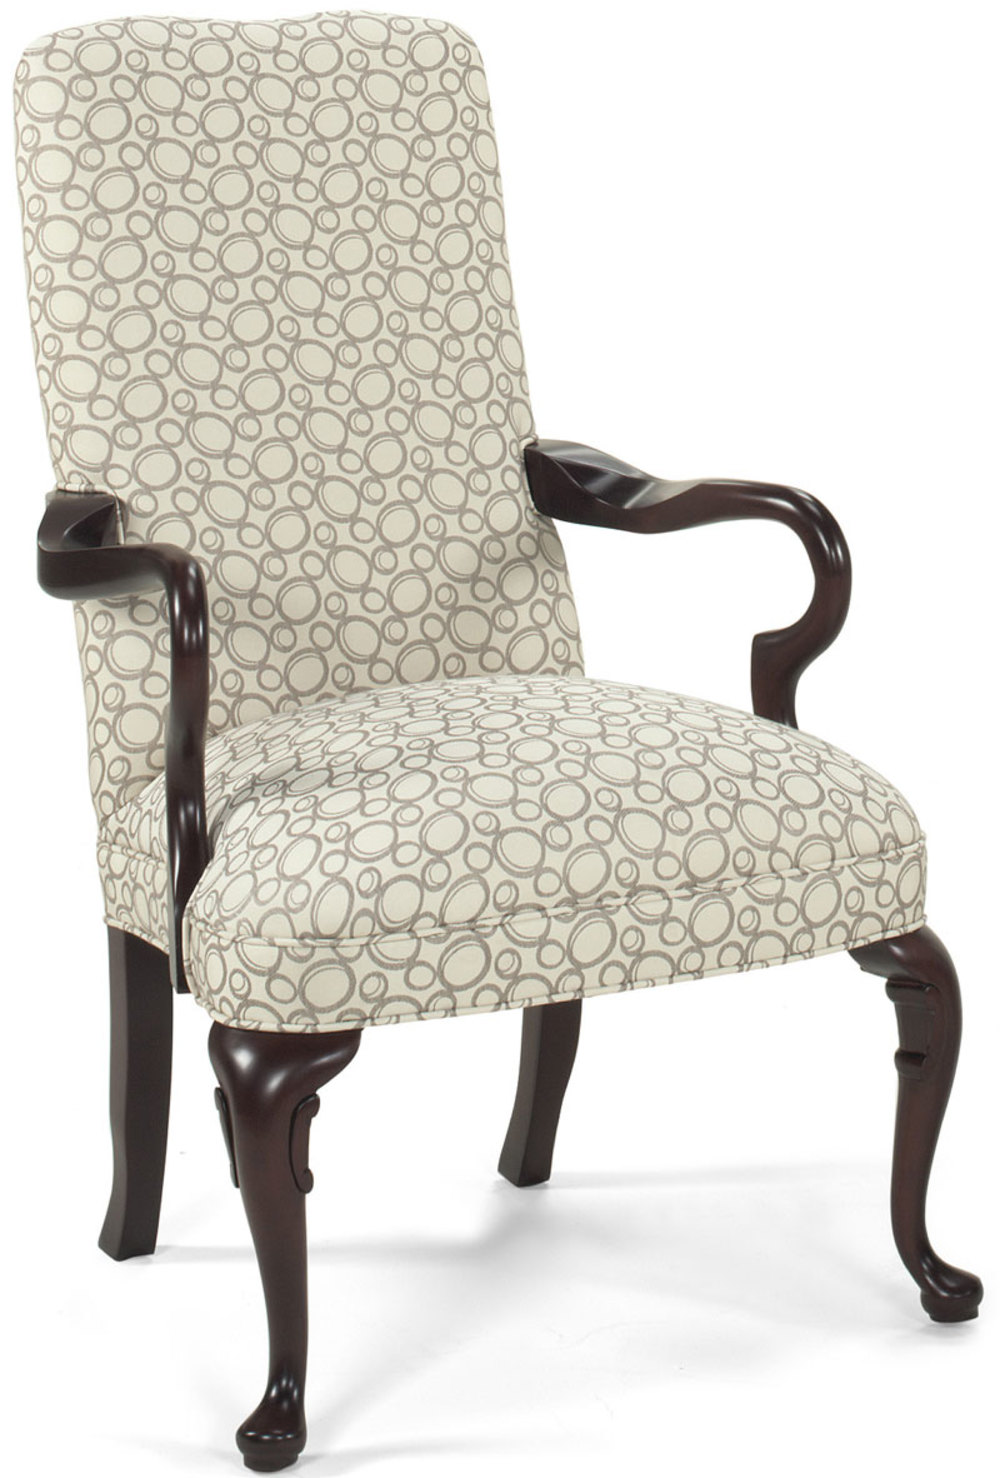 Parker Southern - Kennedy Chair